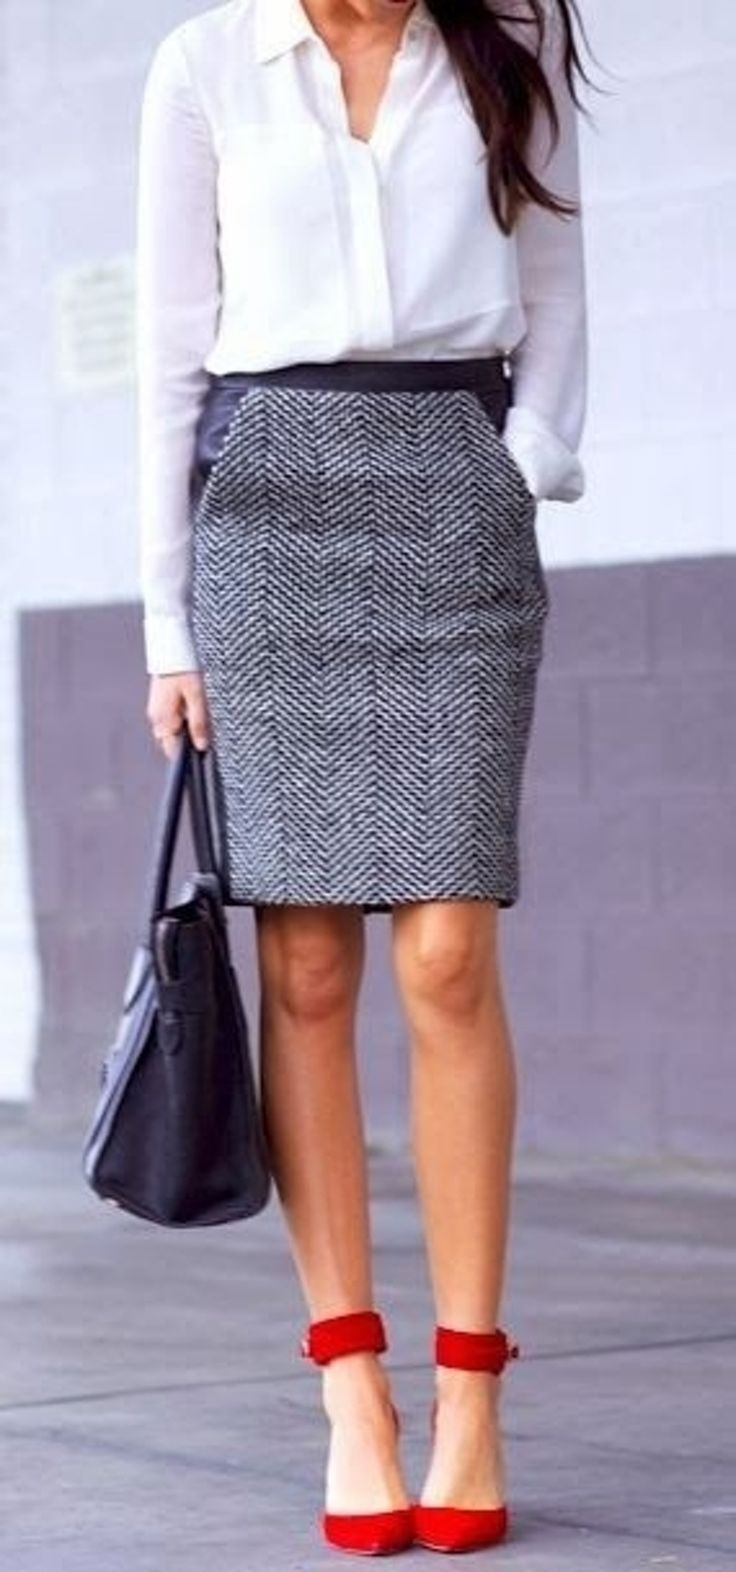 13. A Bit of #Tweed - 44 Professional and #Sophisticated Office Outfits You Will Love ... → #Fashion #Office